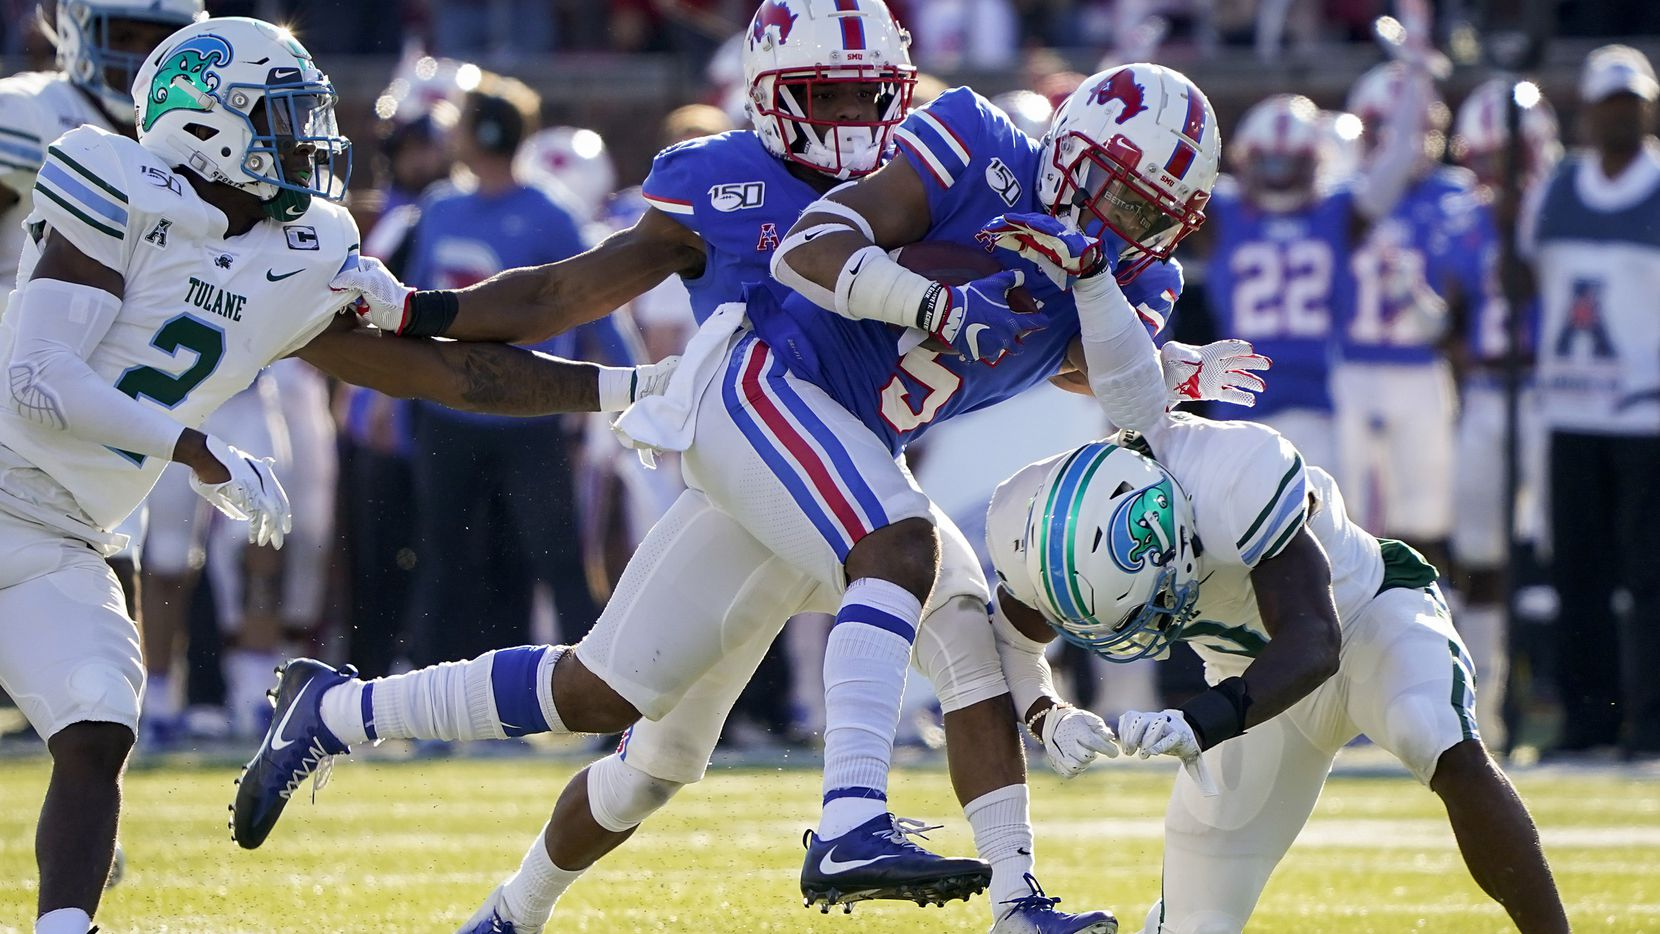 SMU running back Xavier Jones (5) is brought down by Tulane cornerback Jaylon Monroe (9) on a 38-yard run during the first half of an NCAA football game at Ford Stadium on Saturday, Nov. 30, 2019, in Dallas.